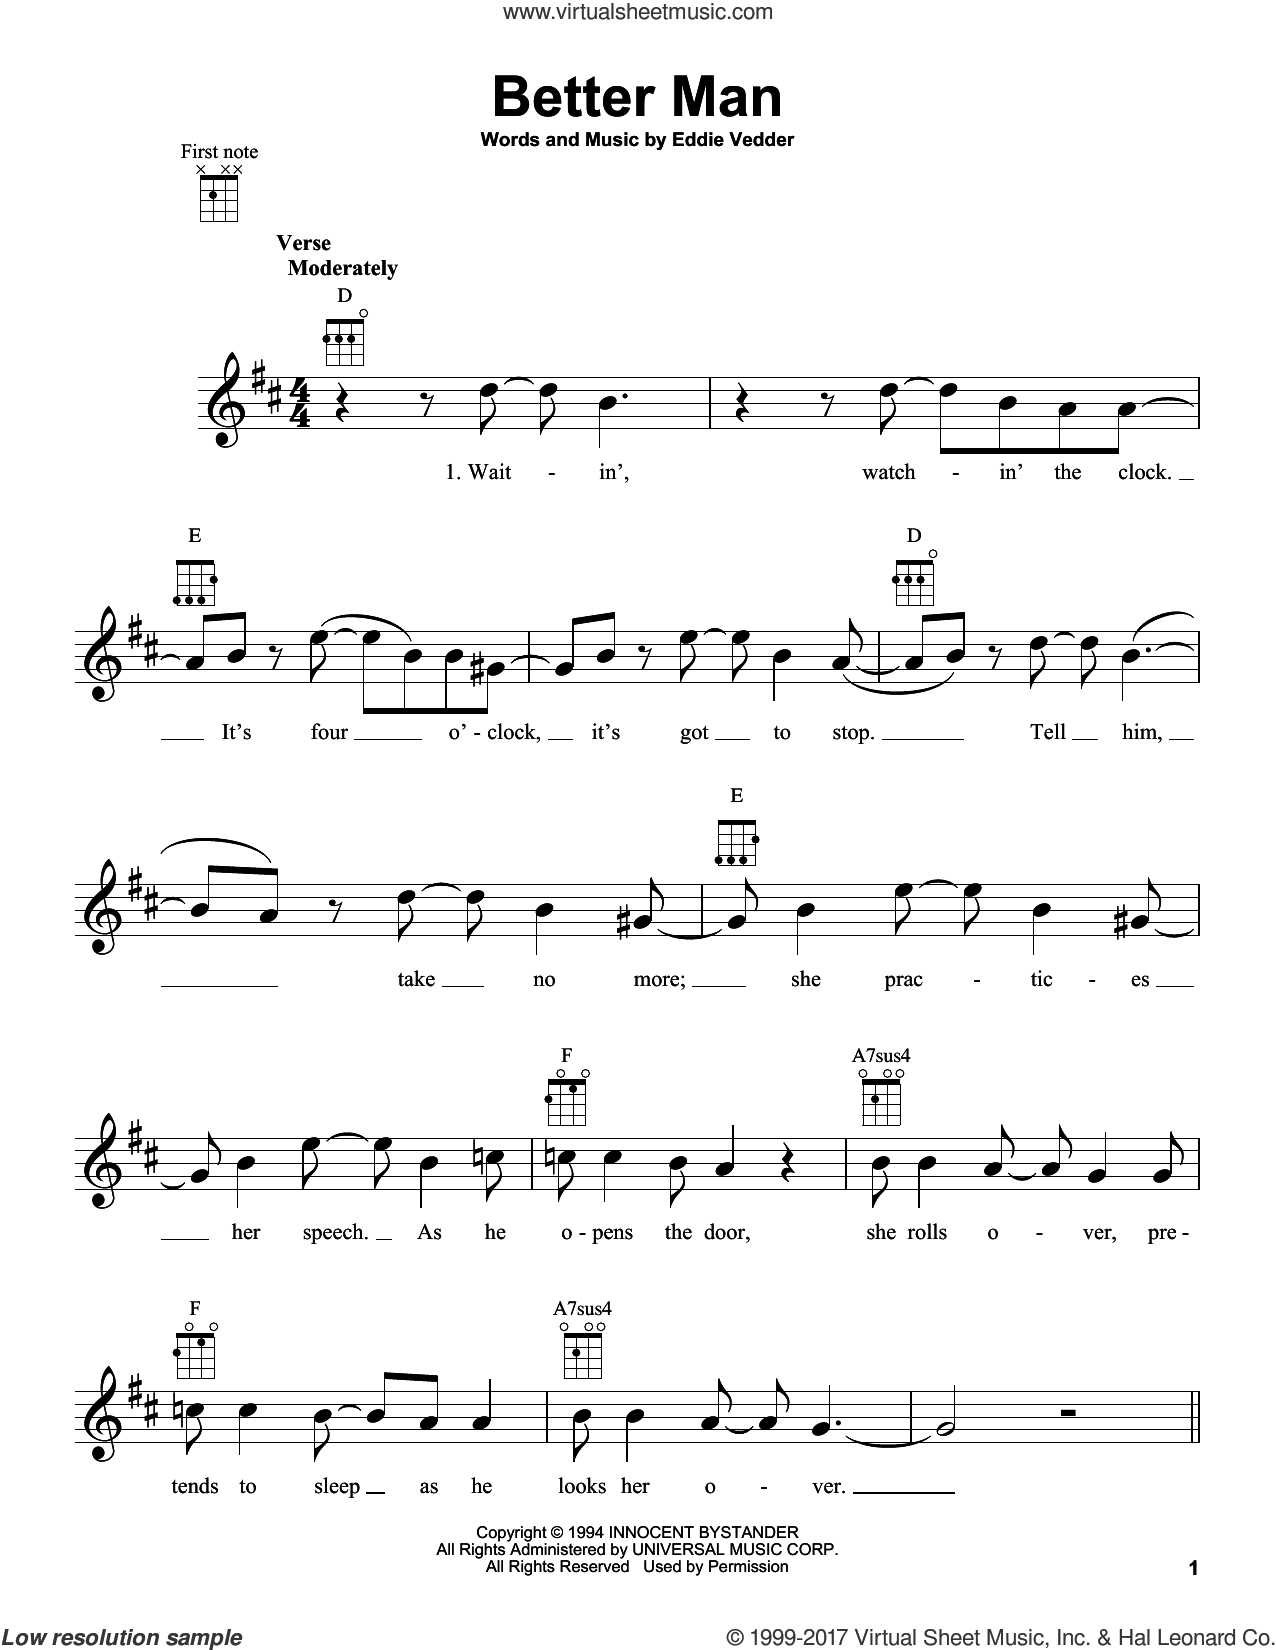 Better Man sheet music for ukulele by Pearl Jam and Eddie Vedder, intermediate skill level